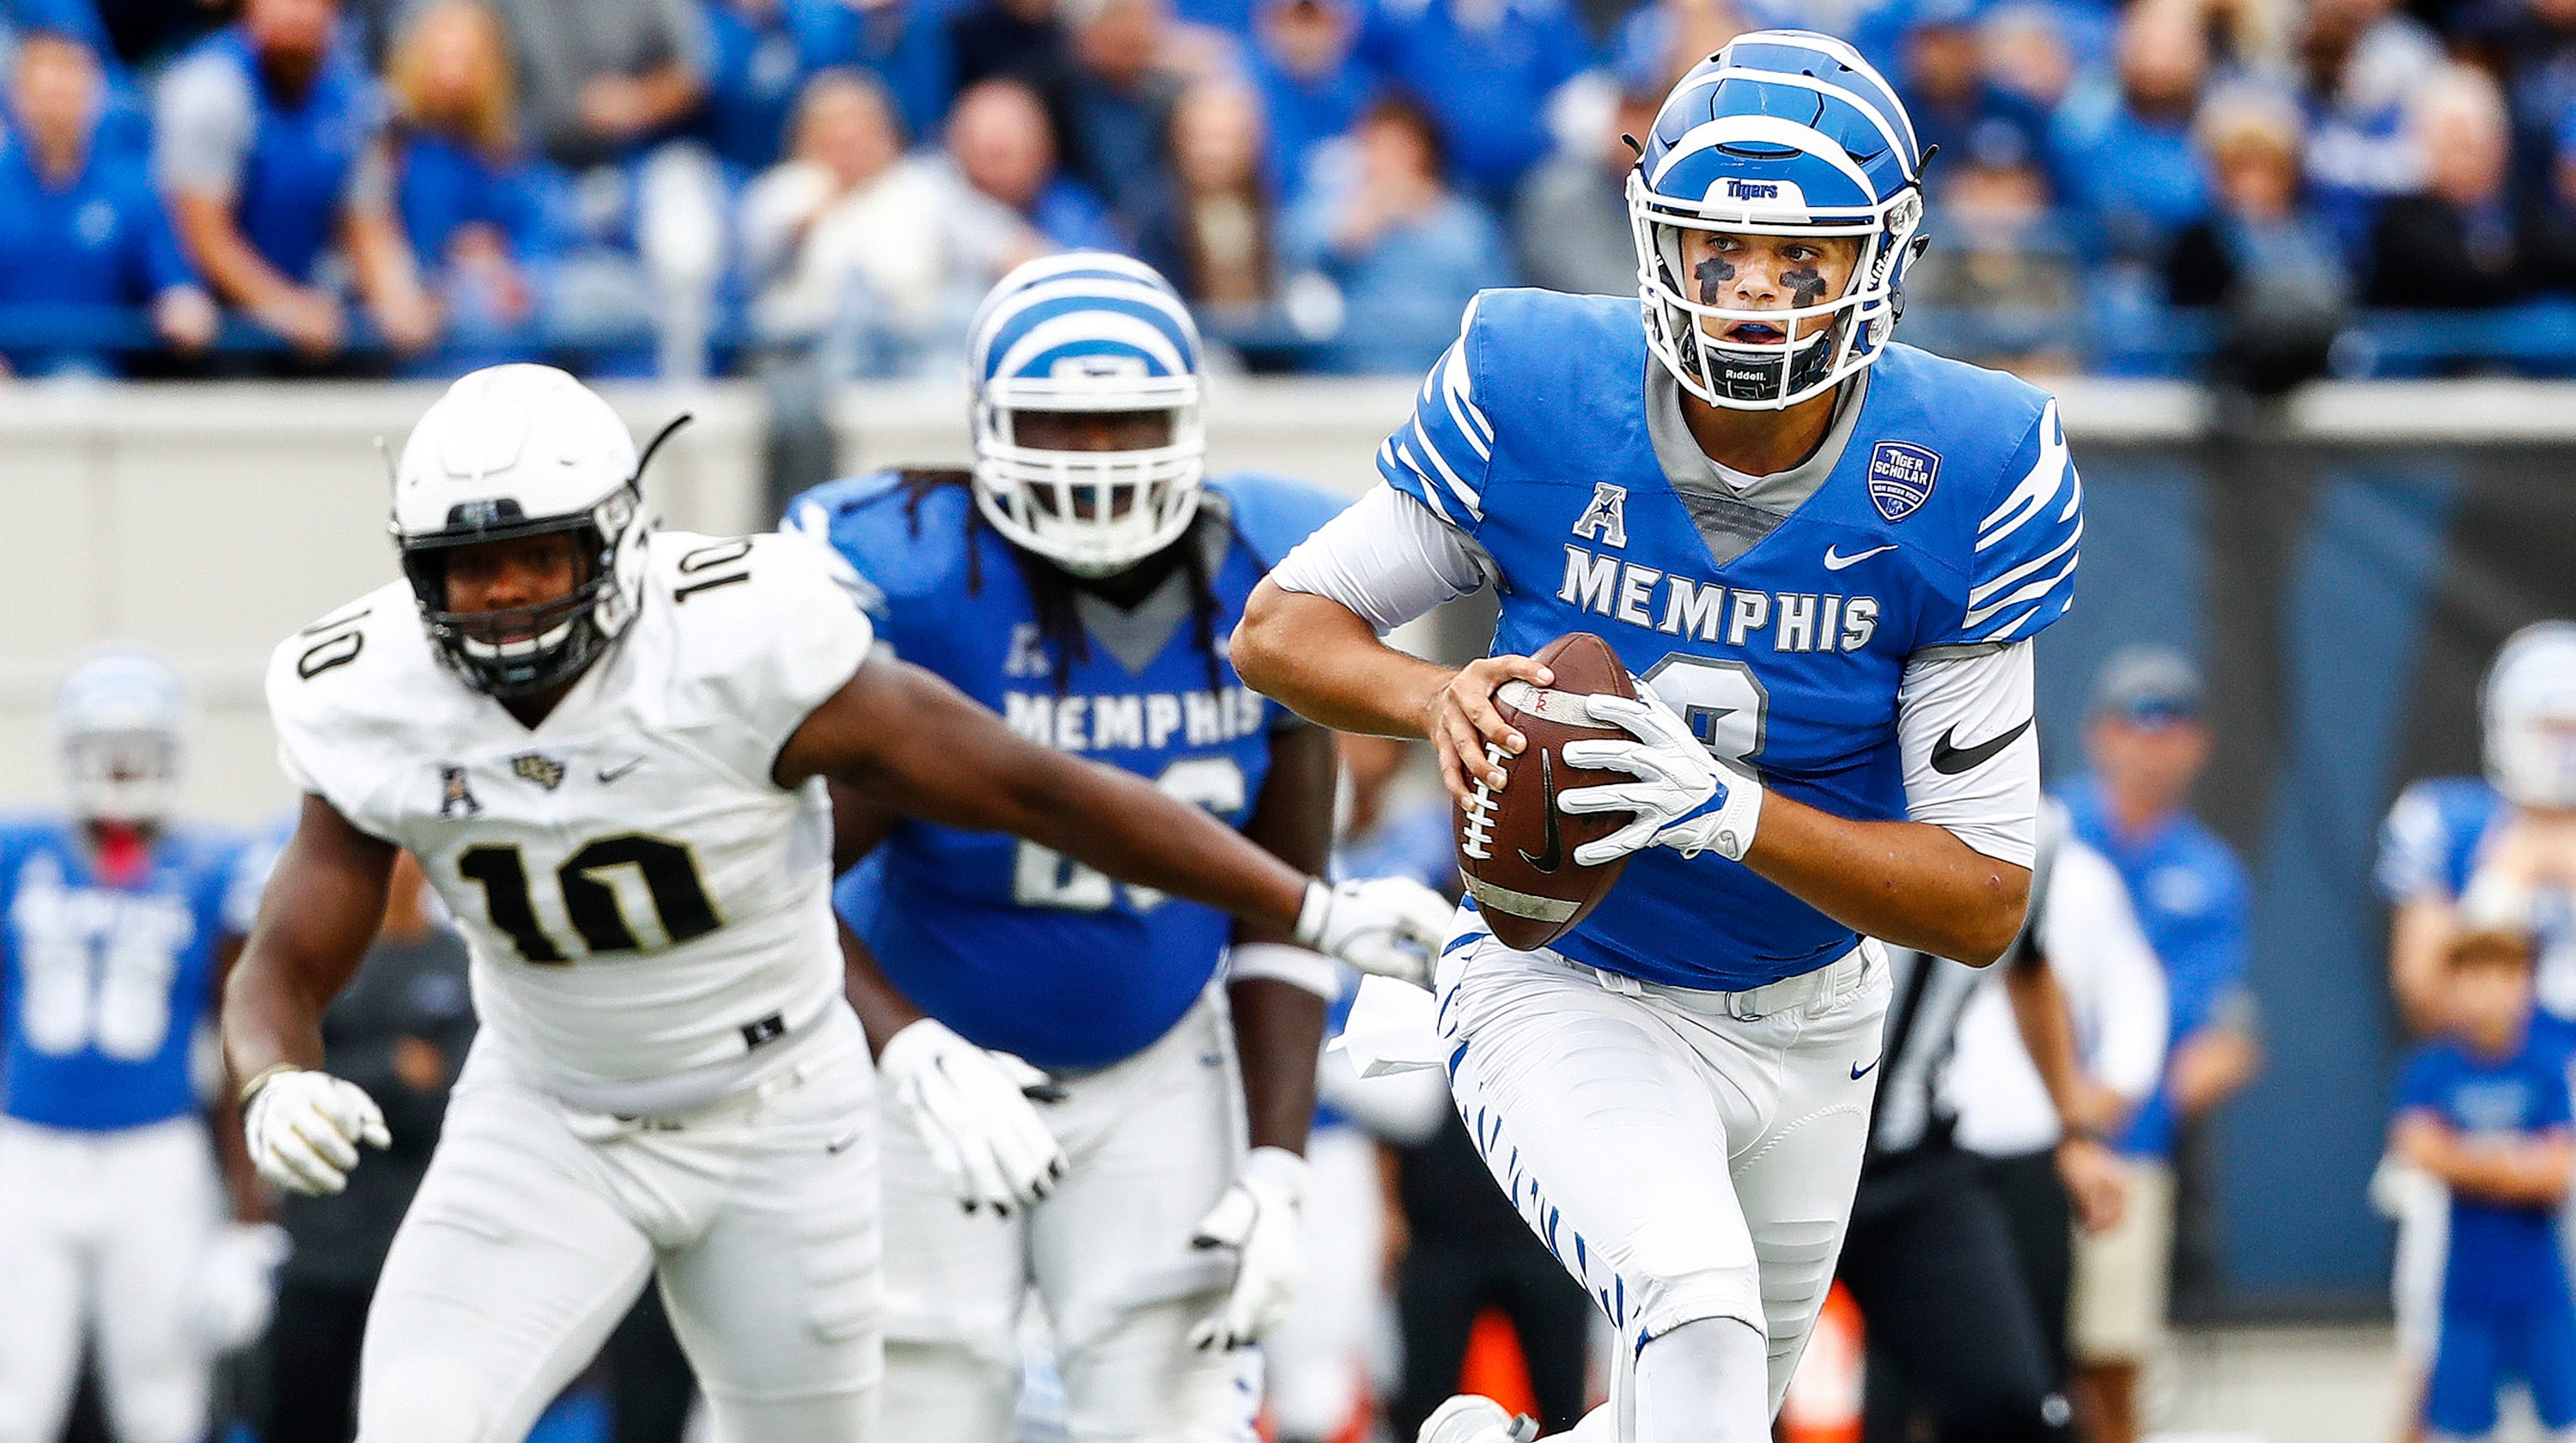 Memphis football holds steady in Week 8 AAC power rankings